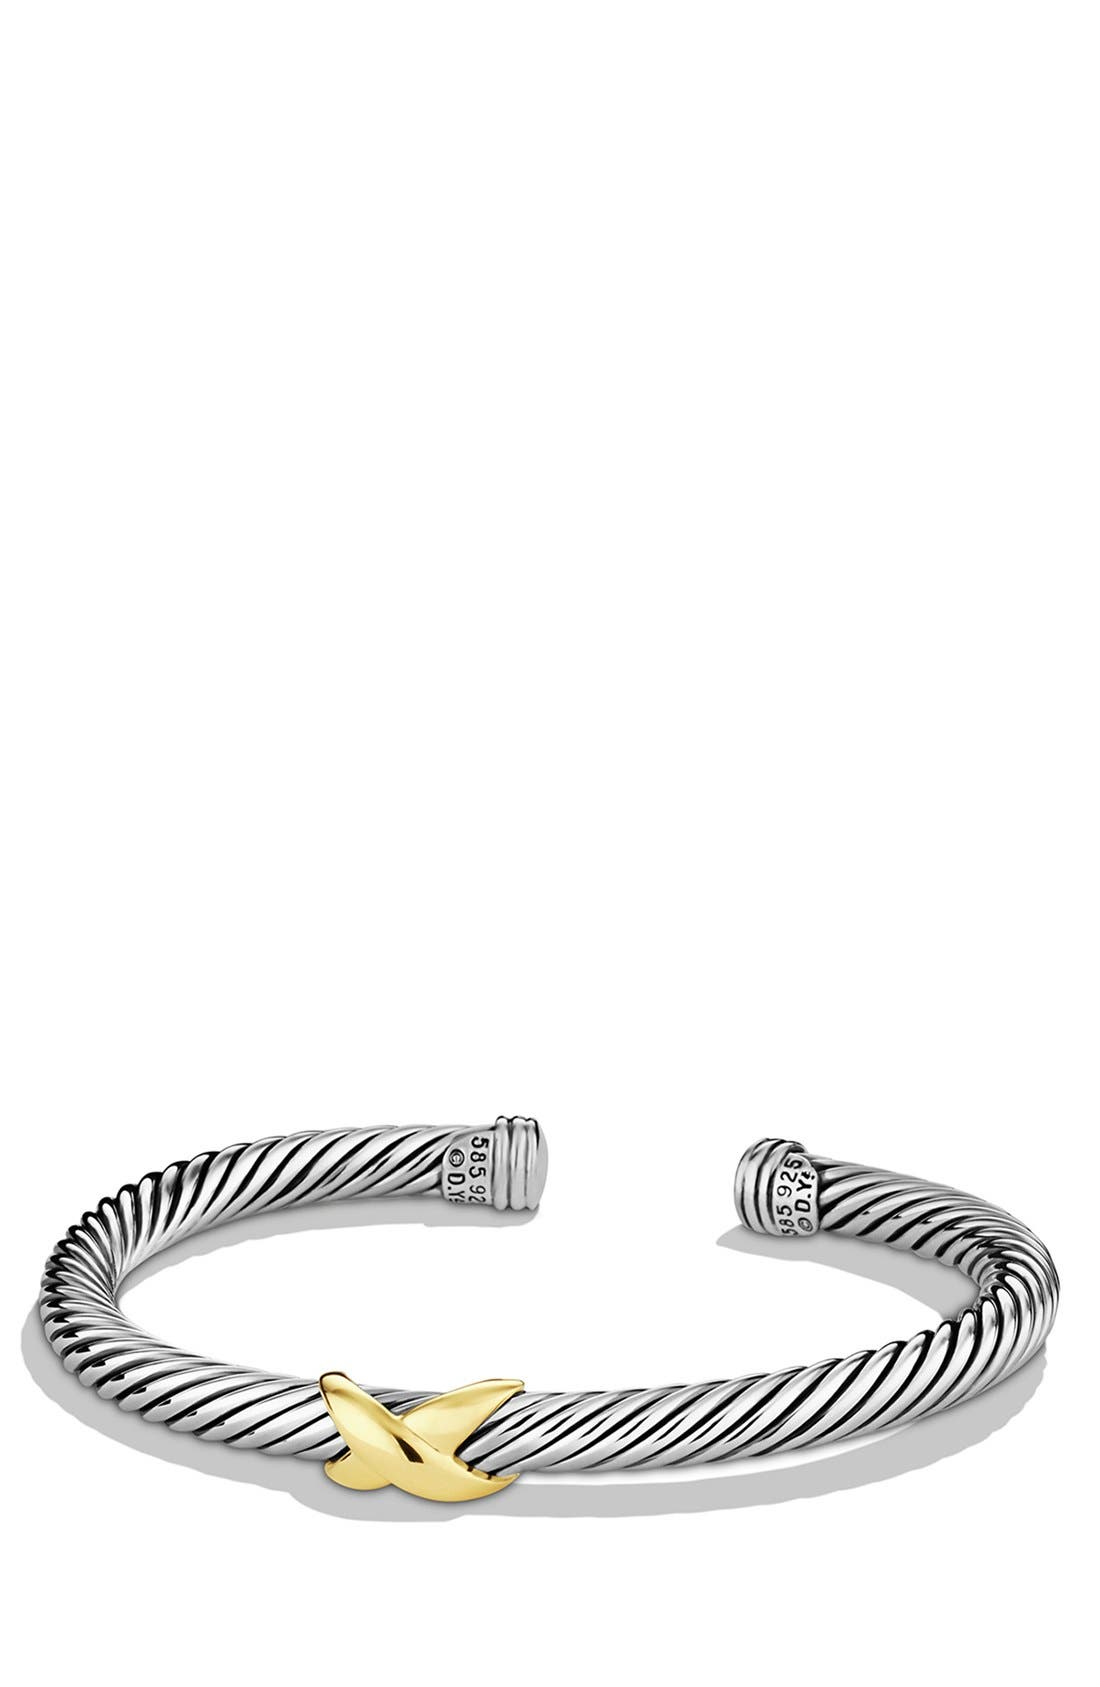 DAVID YURMAN 'X' Bracelet with Gold, Main, color, TWO TONE